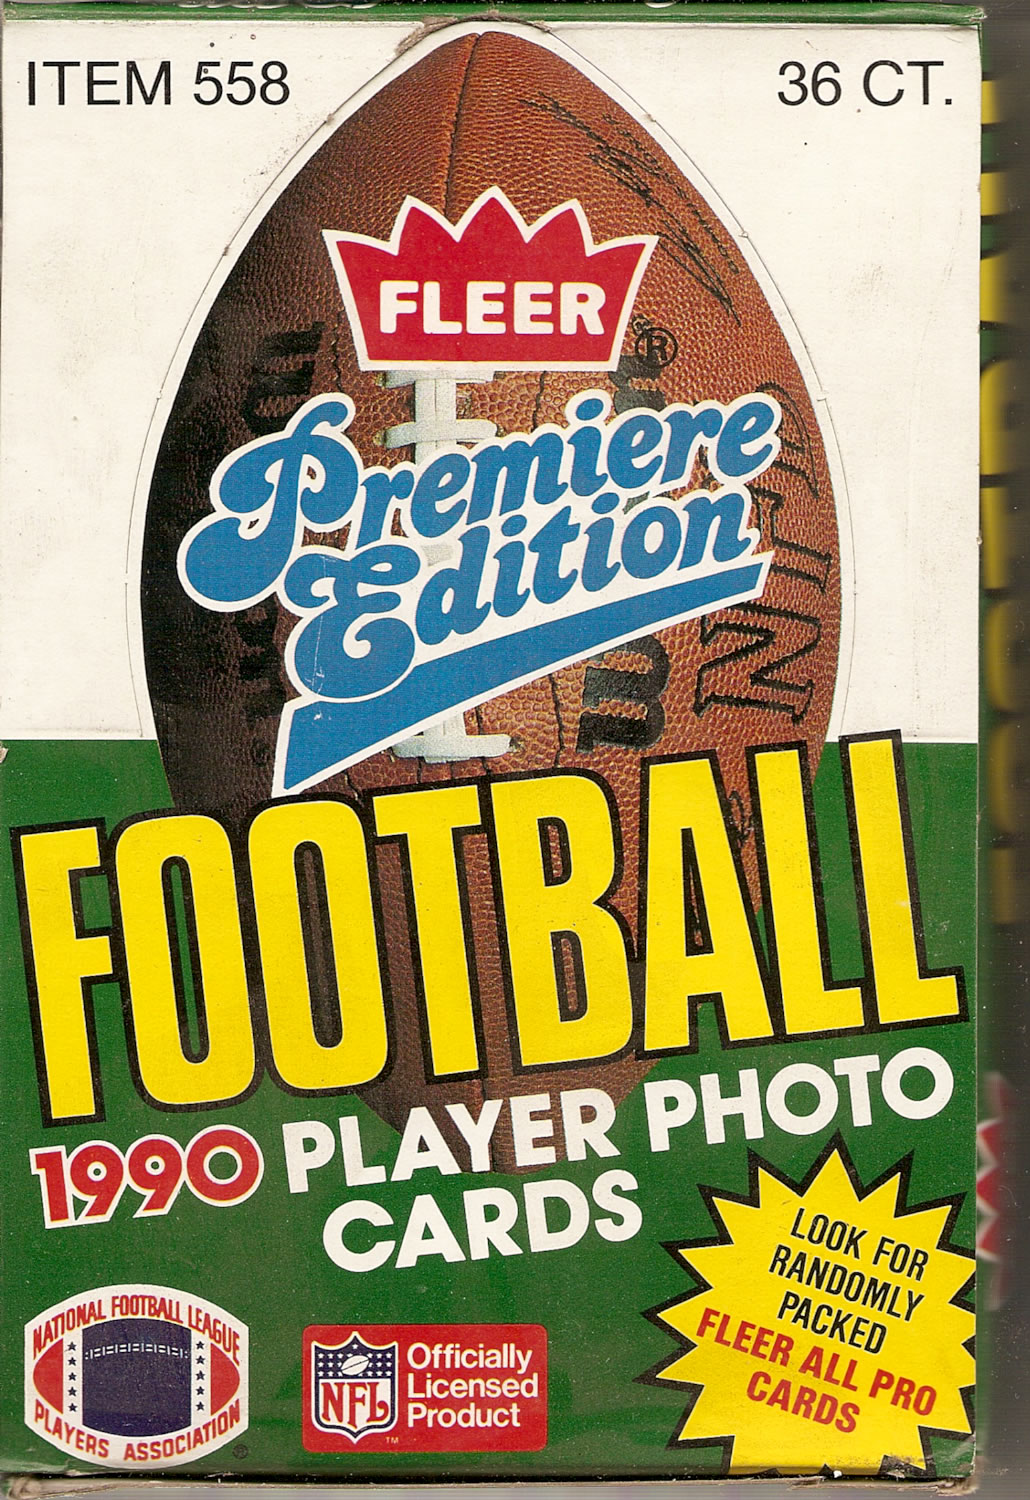 1990 FLEER PREMIERE EDITION FOOTBALL PLAYER PHOTO CARDS BOX